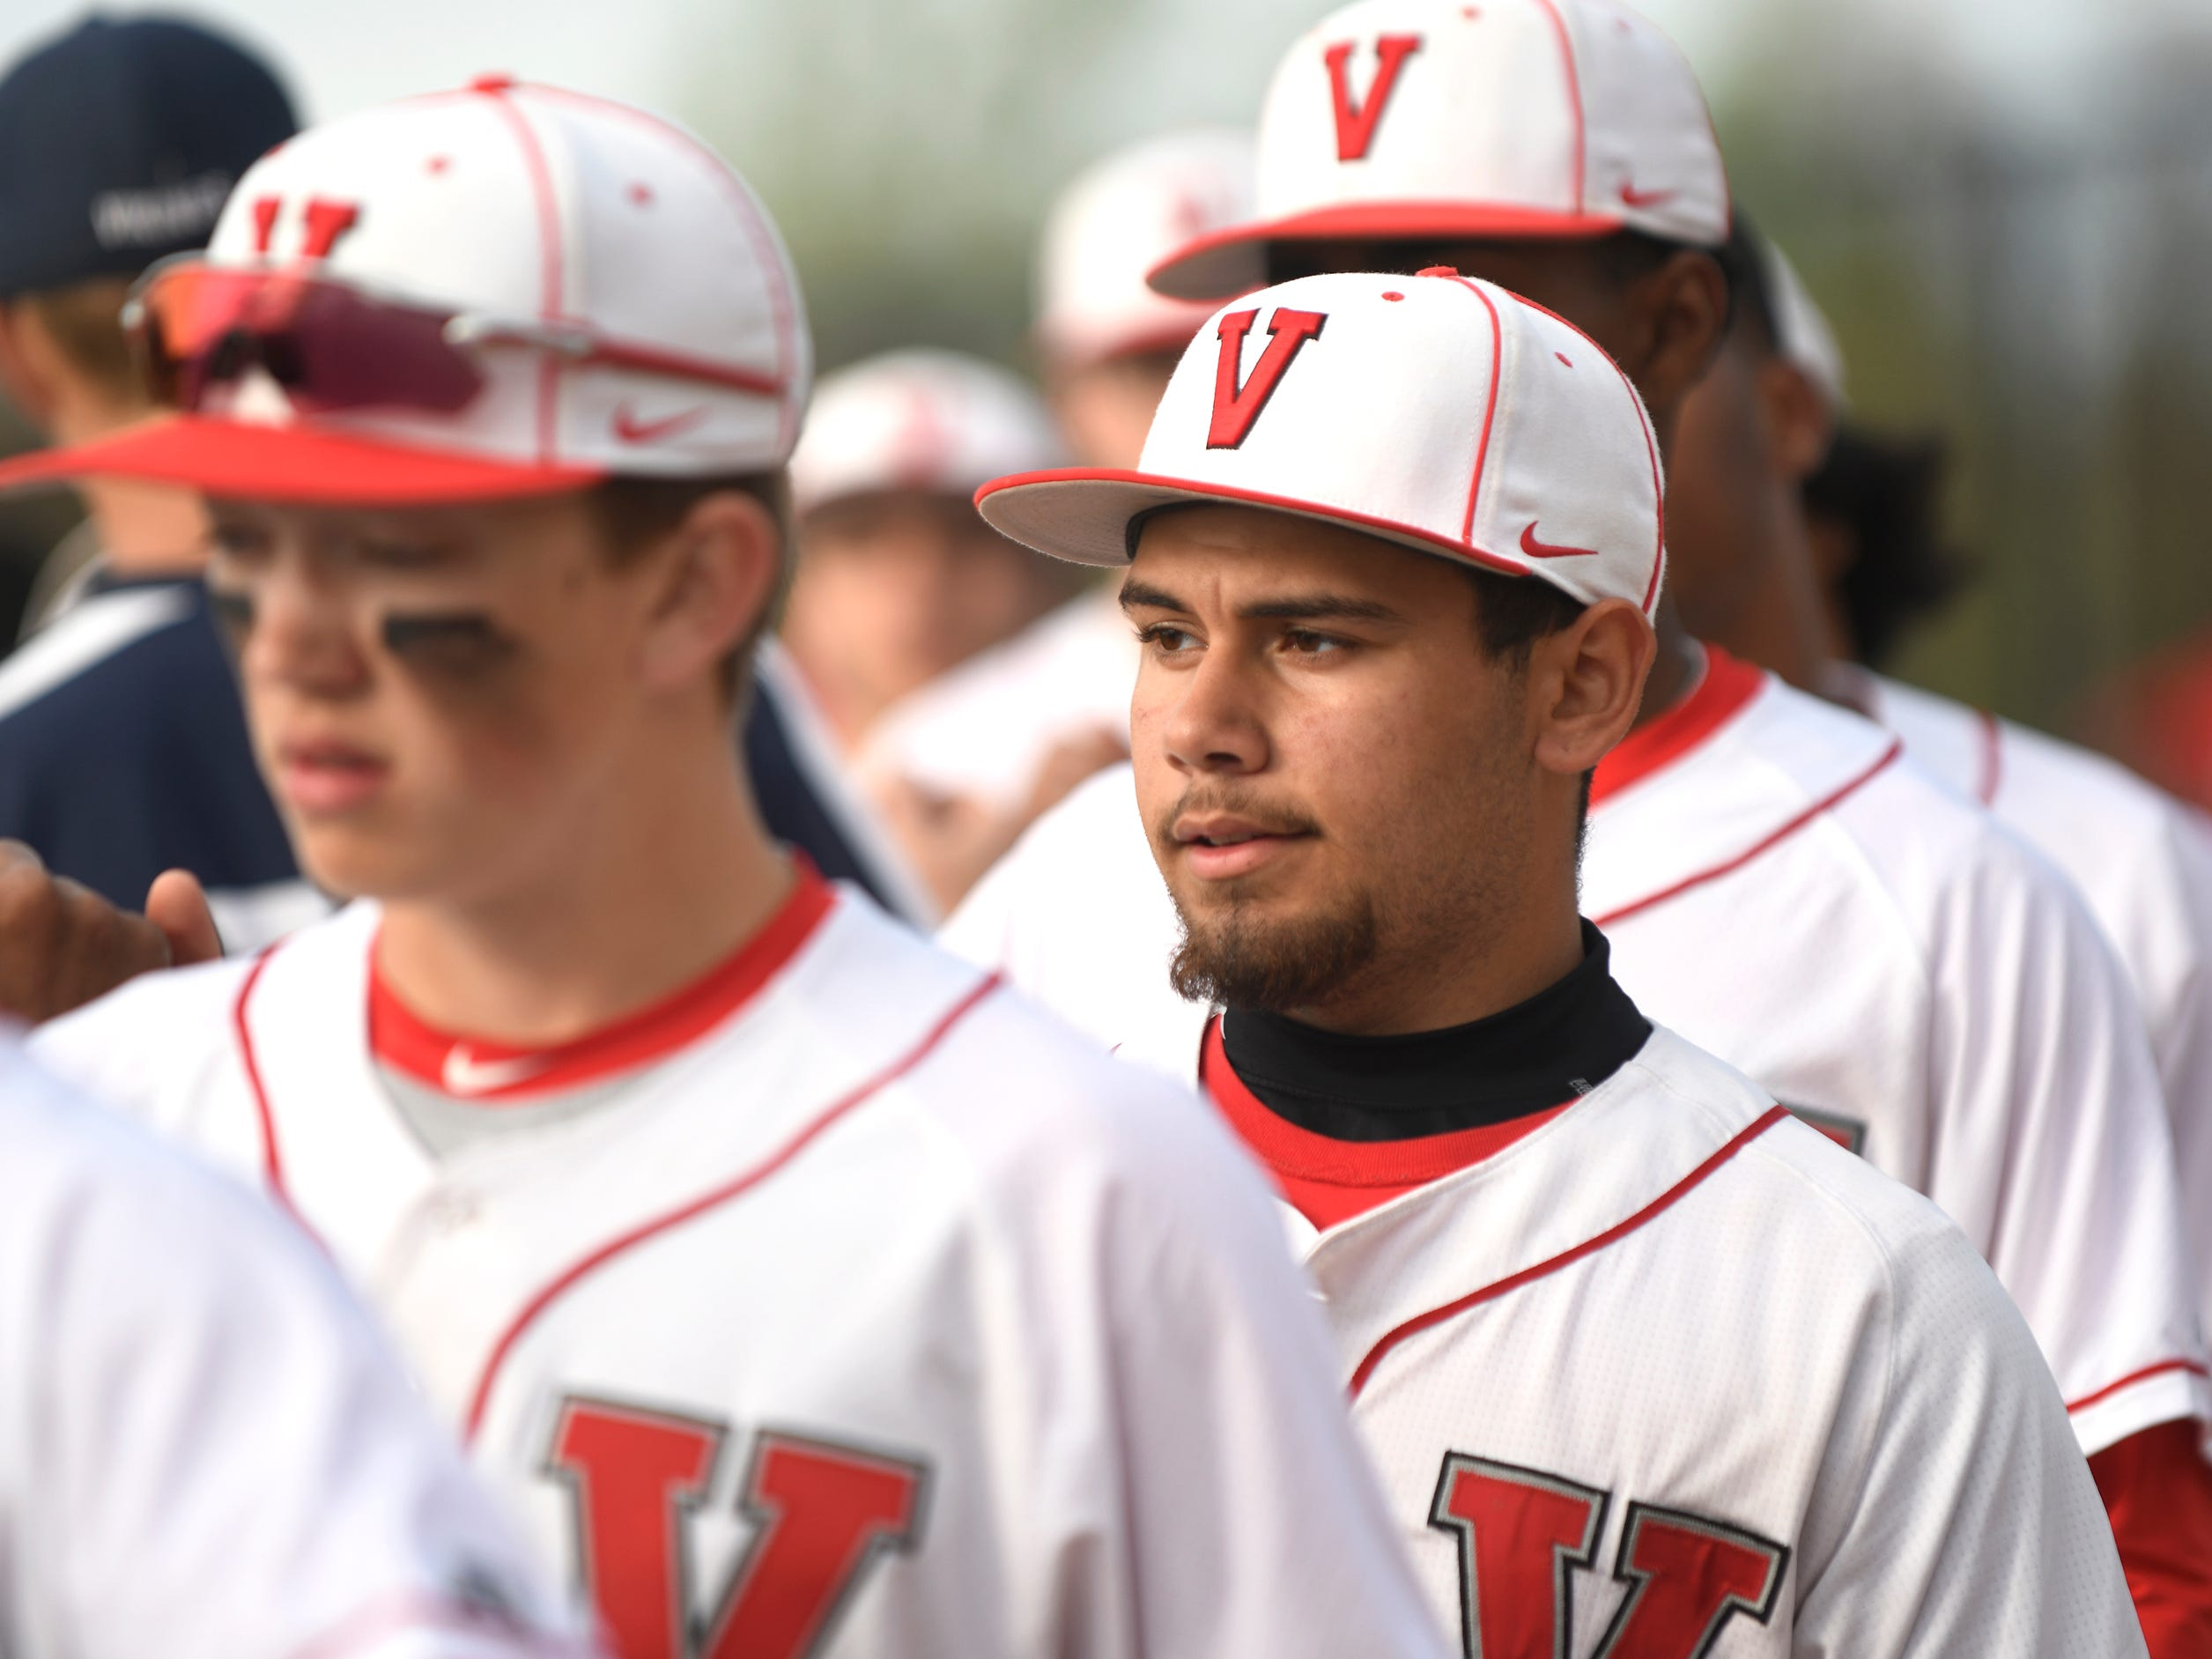 The Fighting Clan's Steven Gonzalez lines up with his team following Wednesday's 12-2 win over Atlantic City in Vineland.